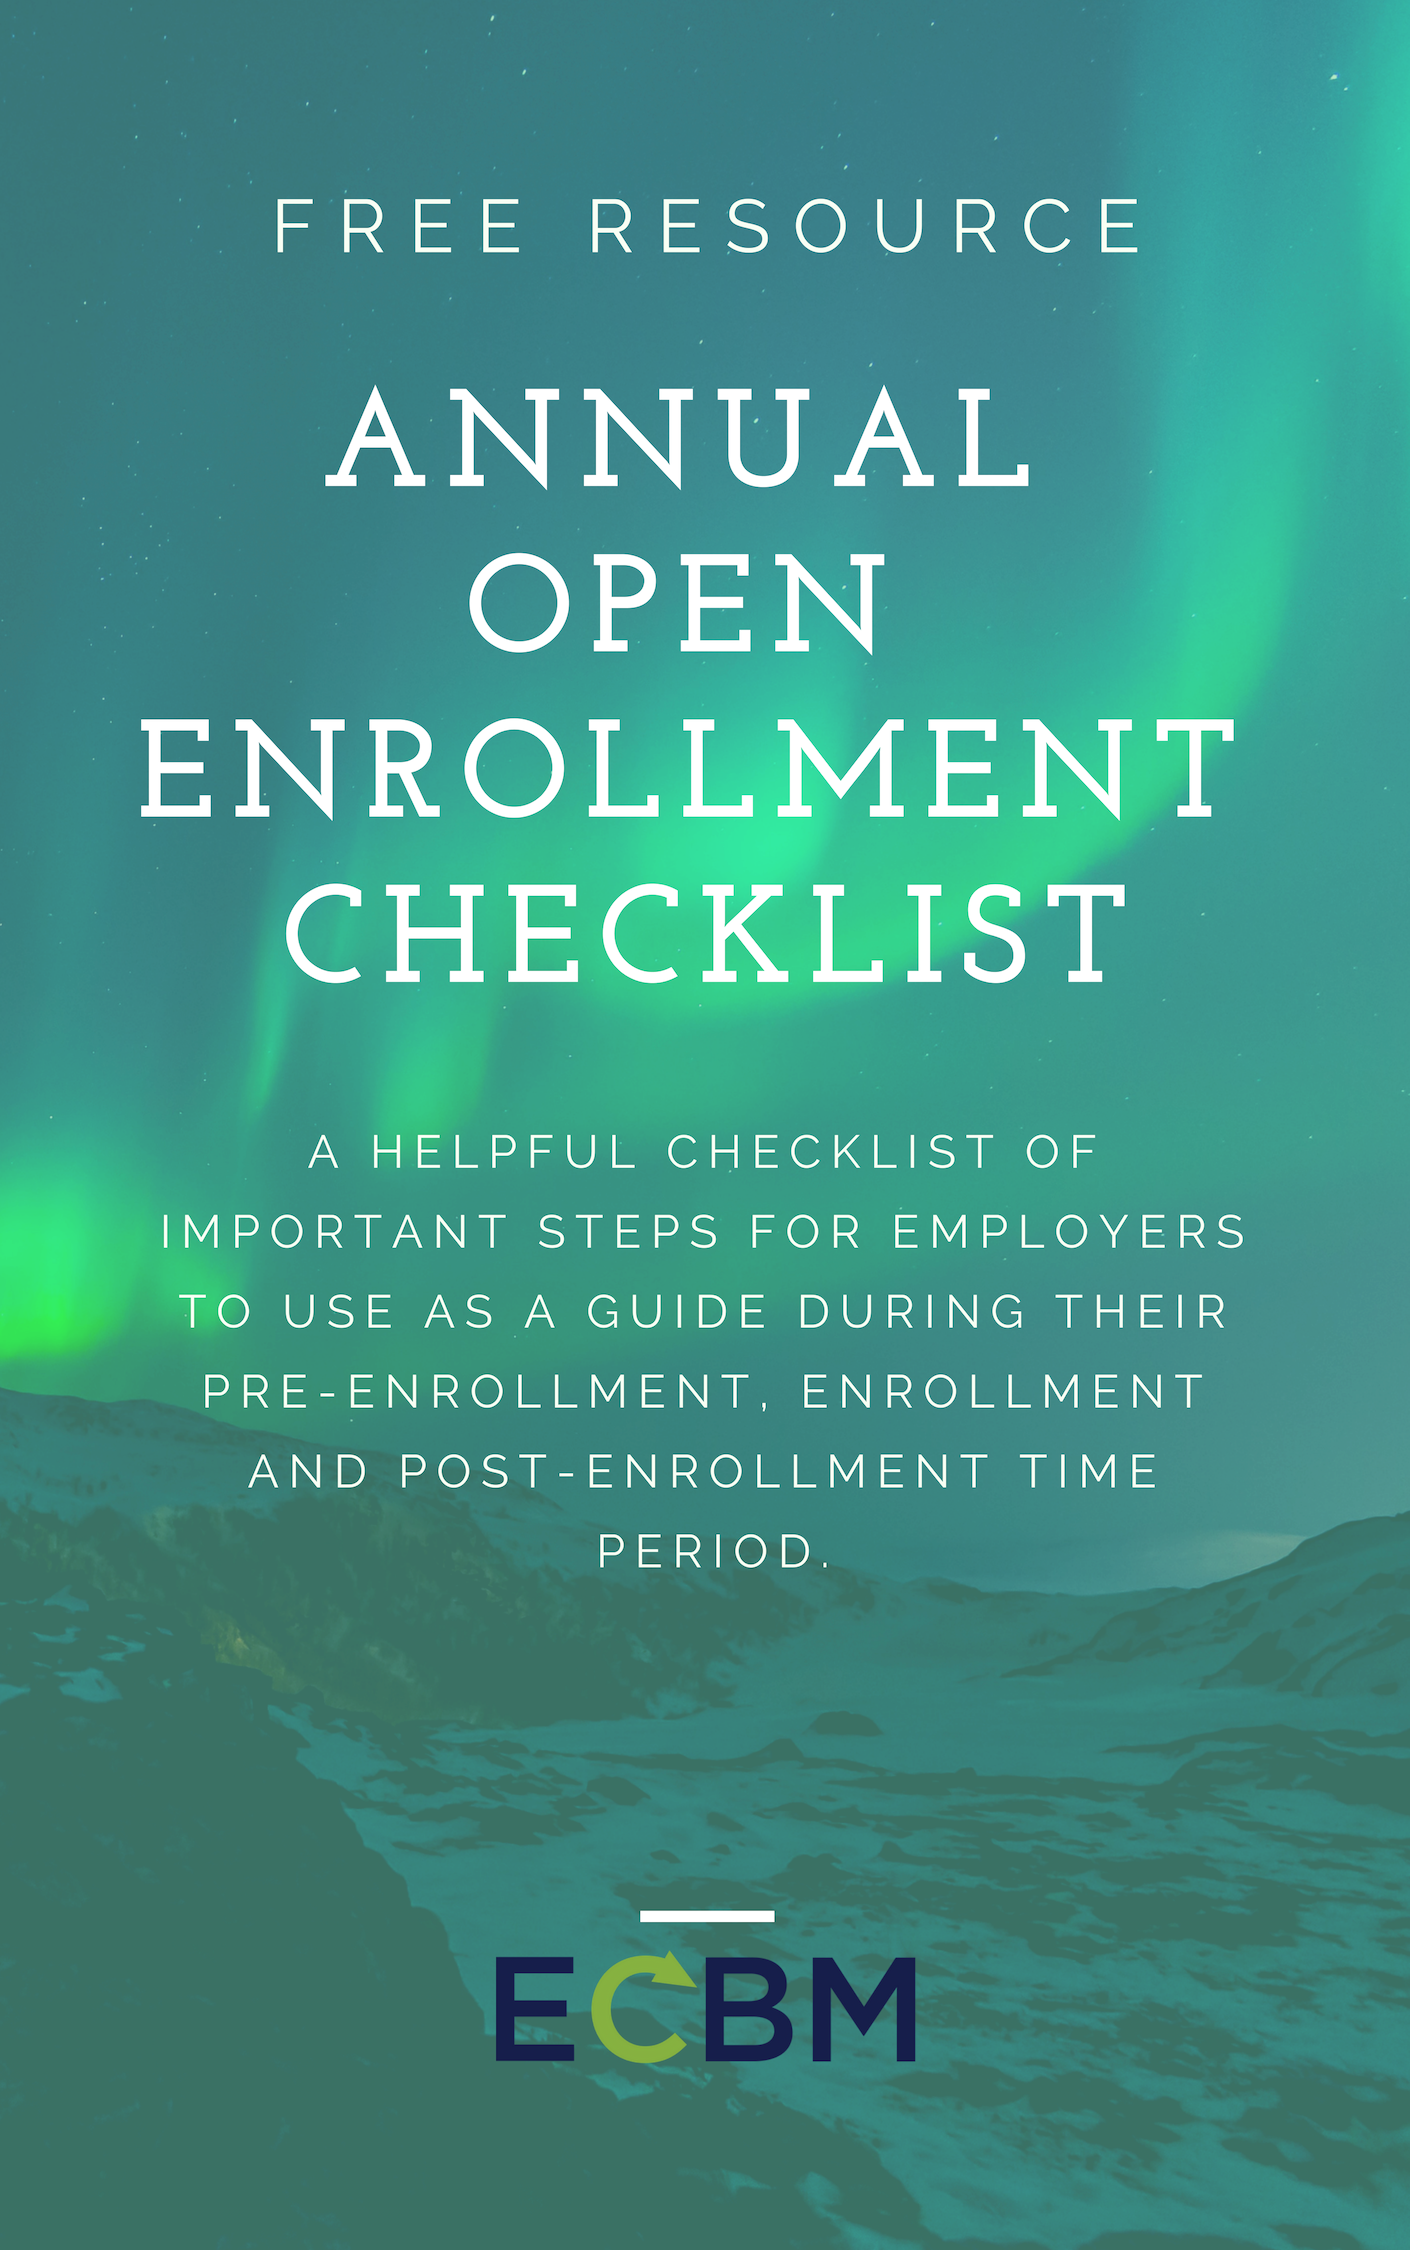 Annual Open Enrollment Checklist